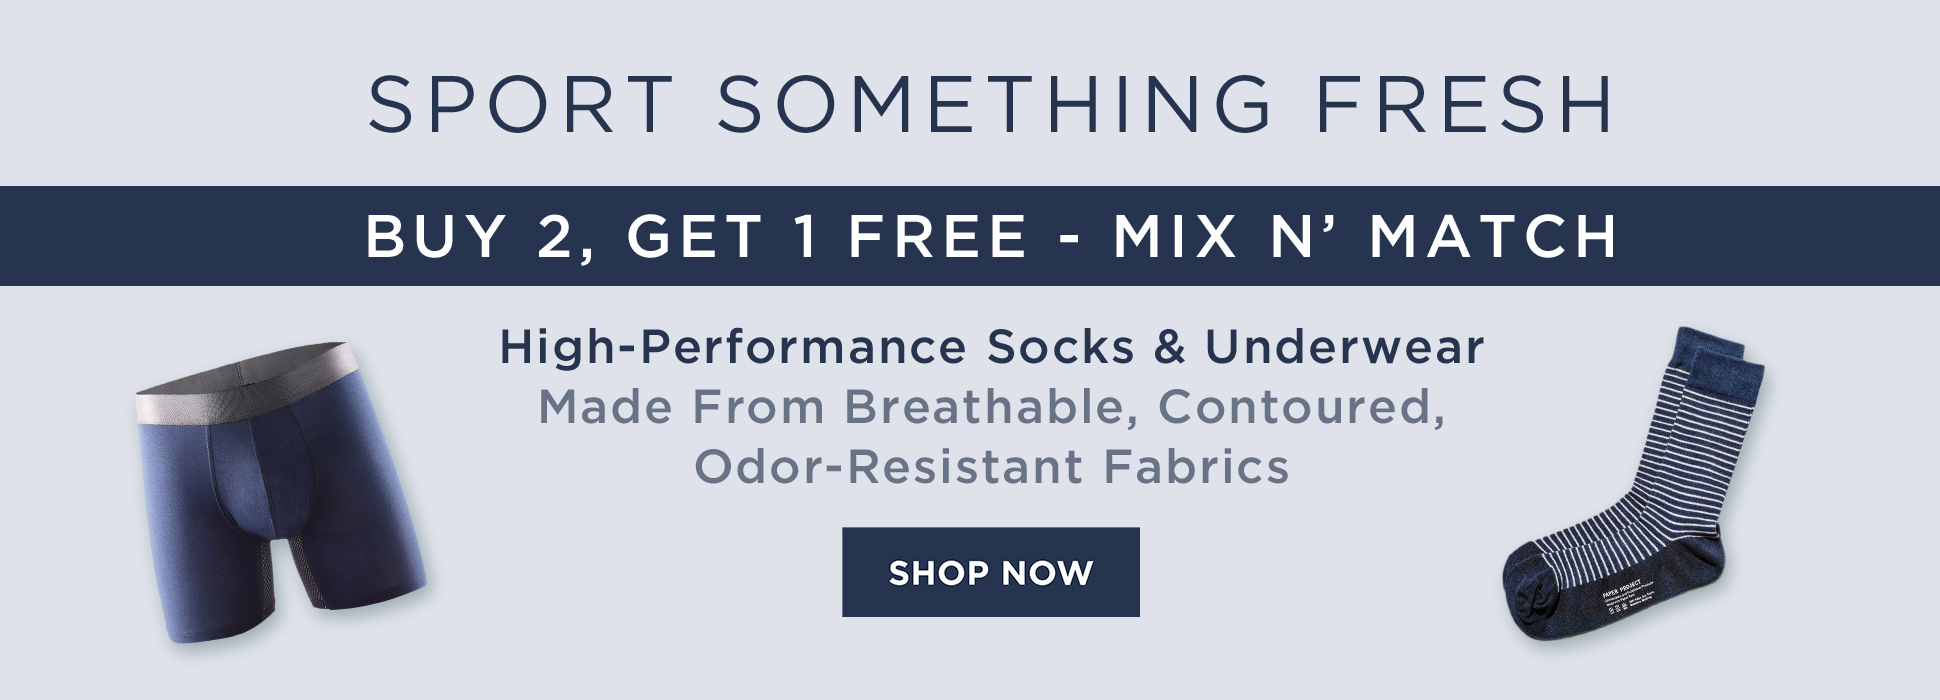 Sock and Underwear B2G1 Free (banners)